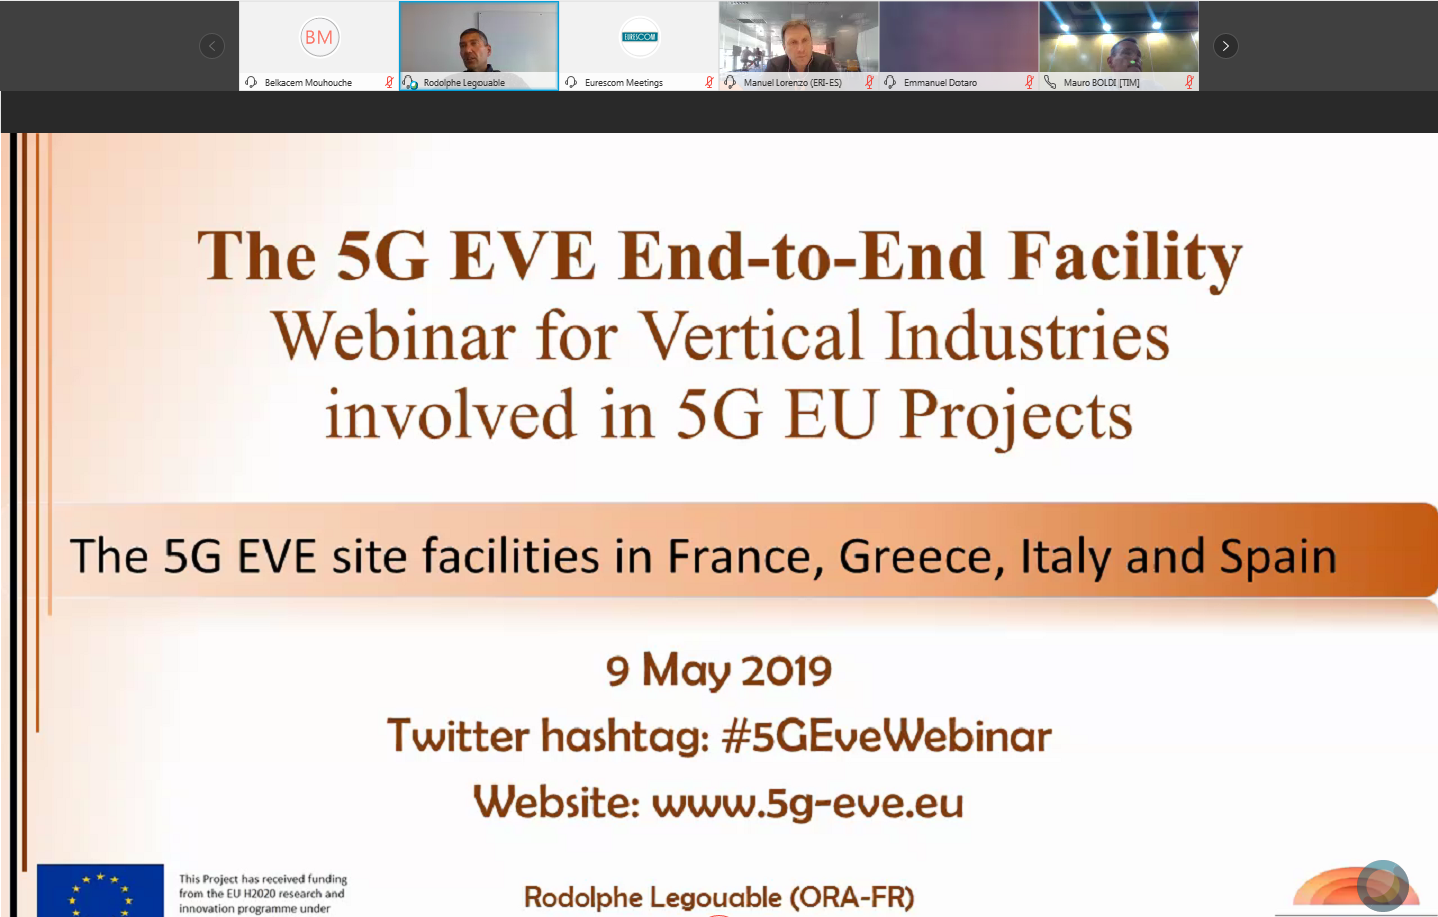 Webinar on the 5G EVE end-to-end facility for verticals